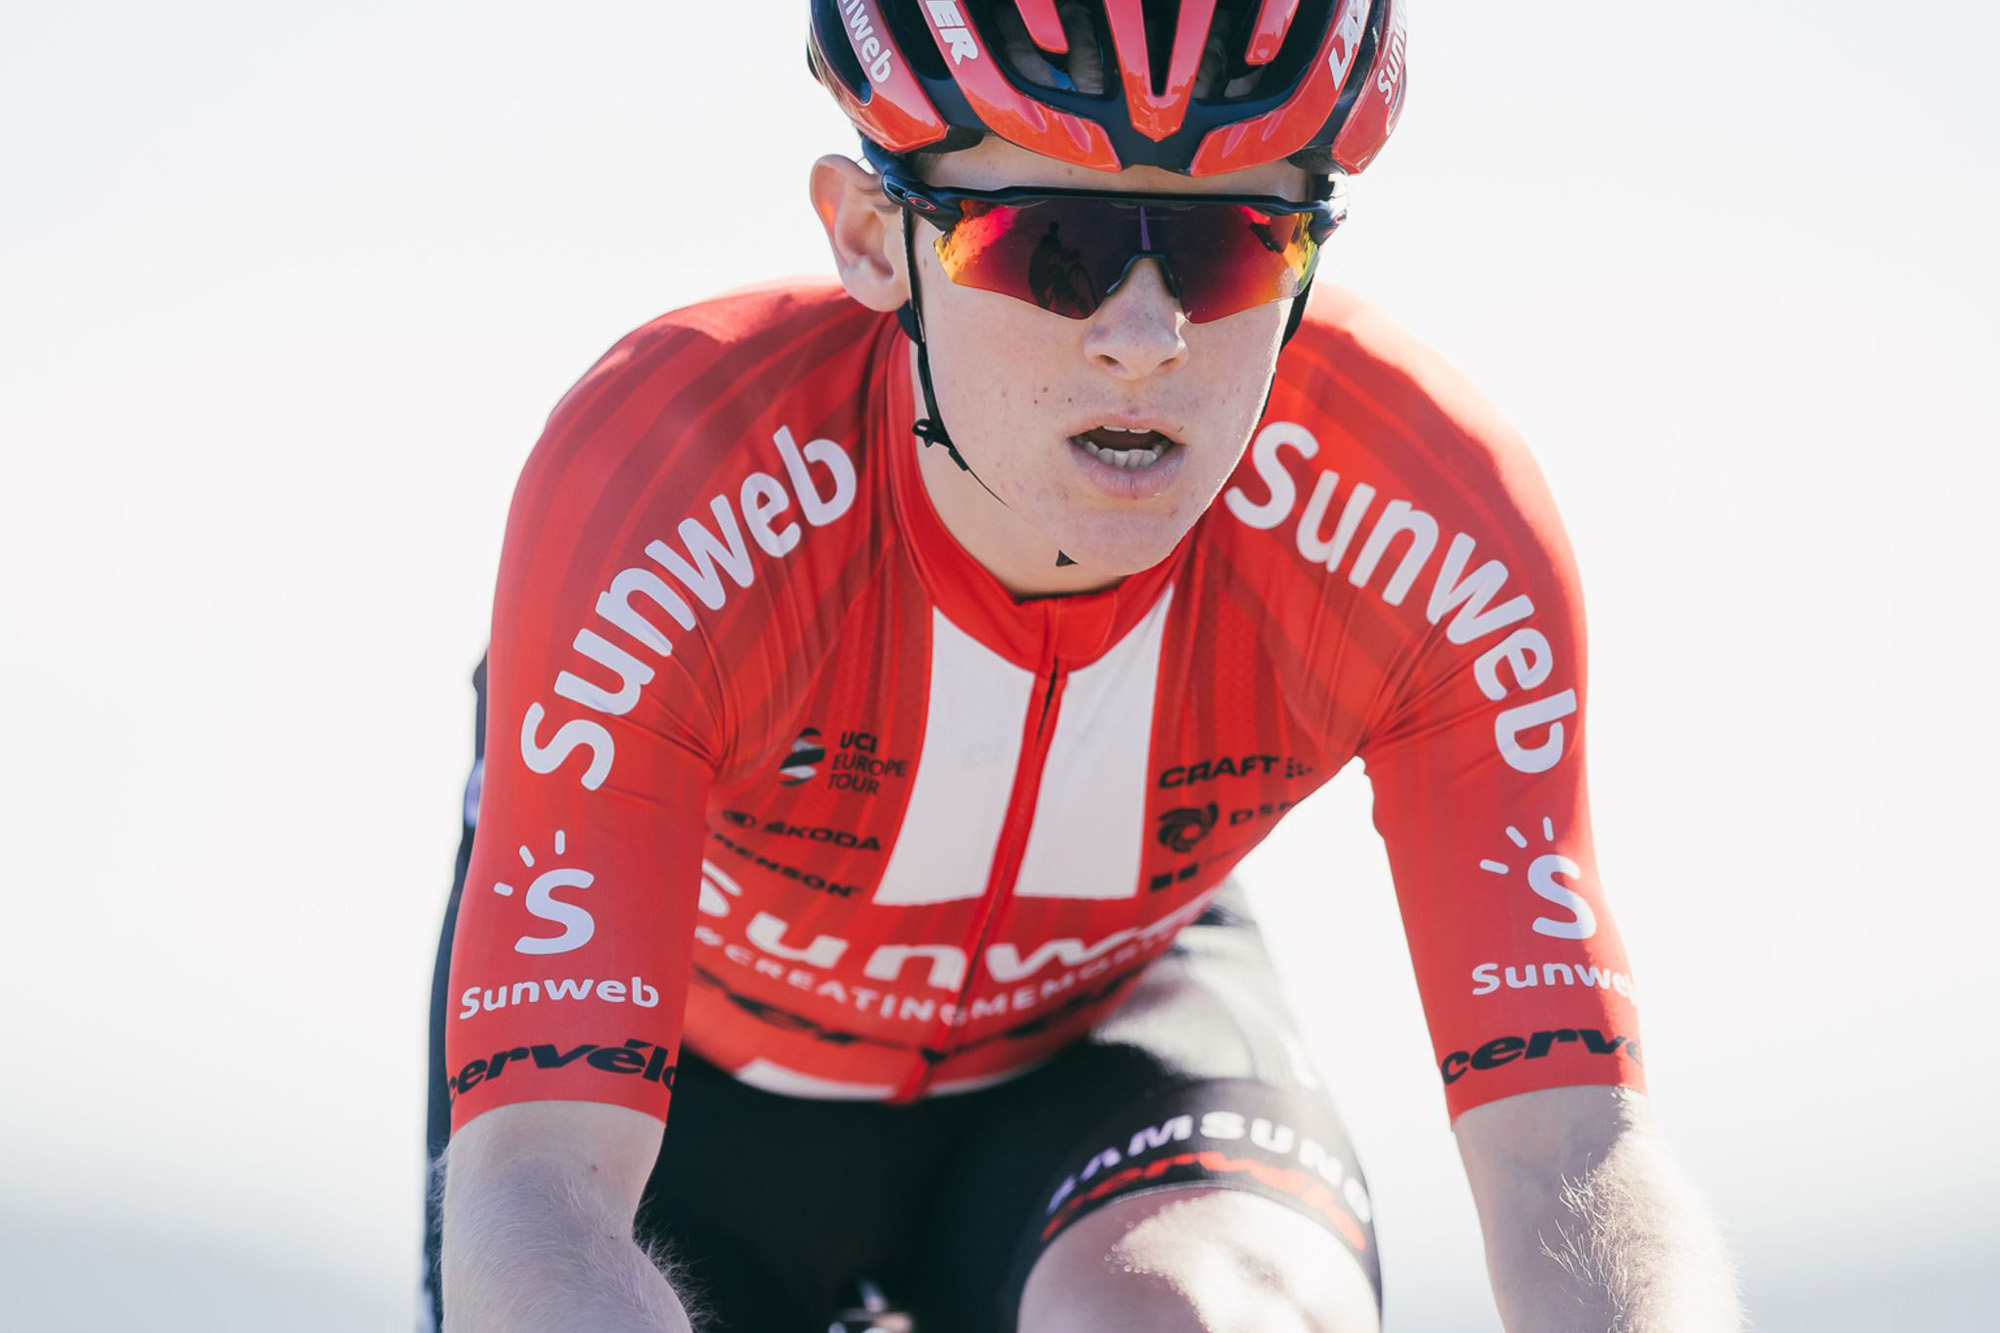 Martin Salmon Team Sunweb 2019